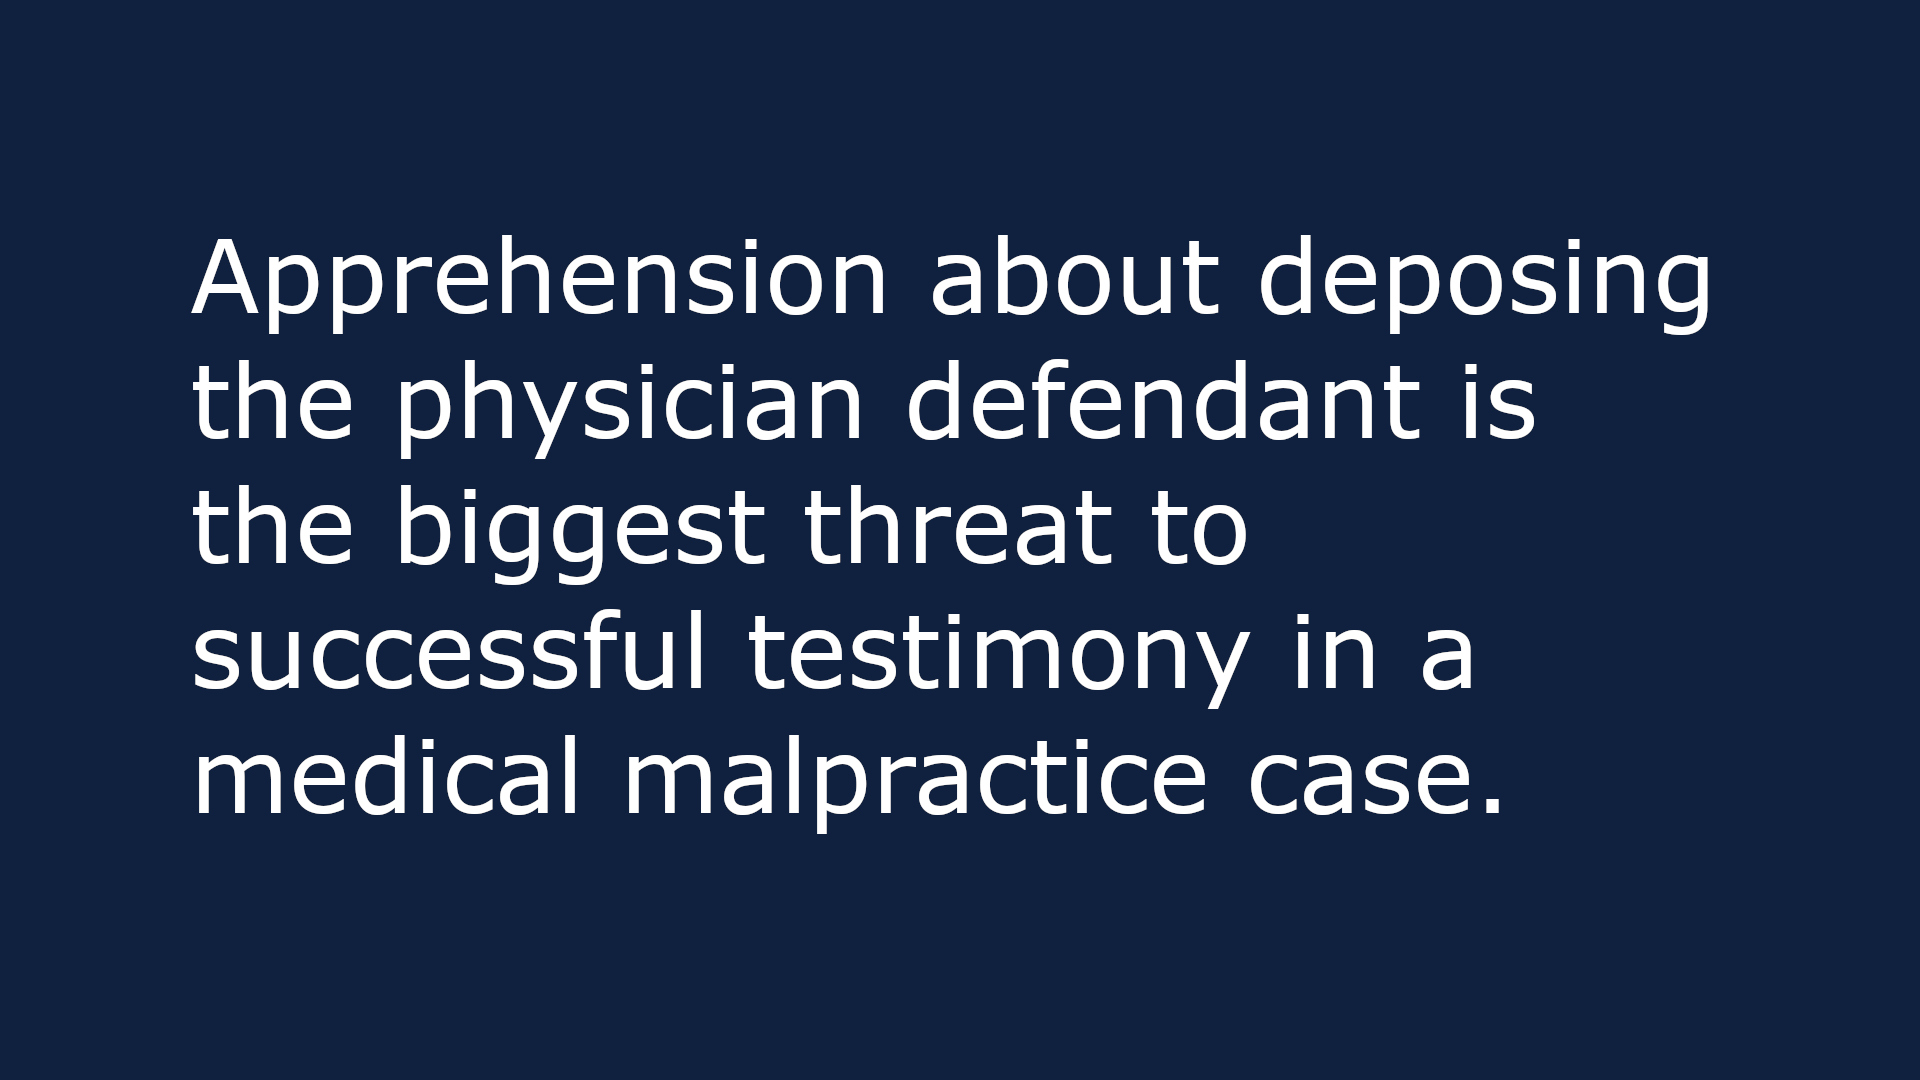 text based image that reads: Apprehension about deposing the physician defendant is the biggest threat to successful testimony in a medical malpractice case.